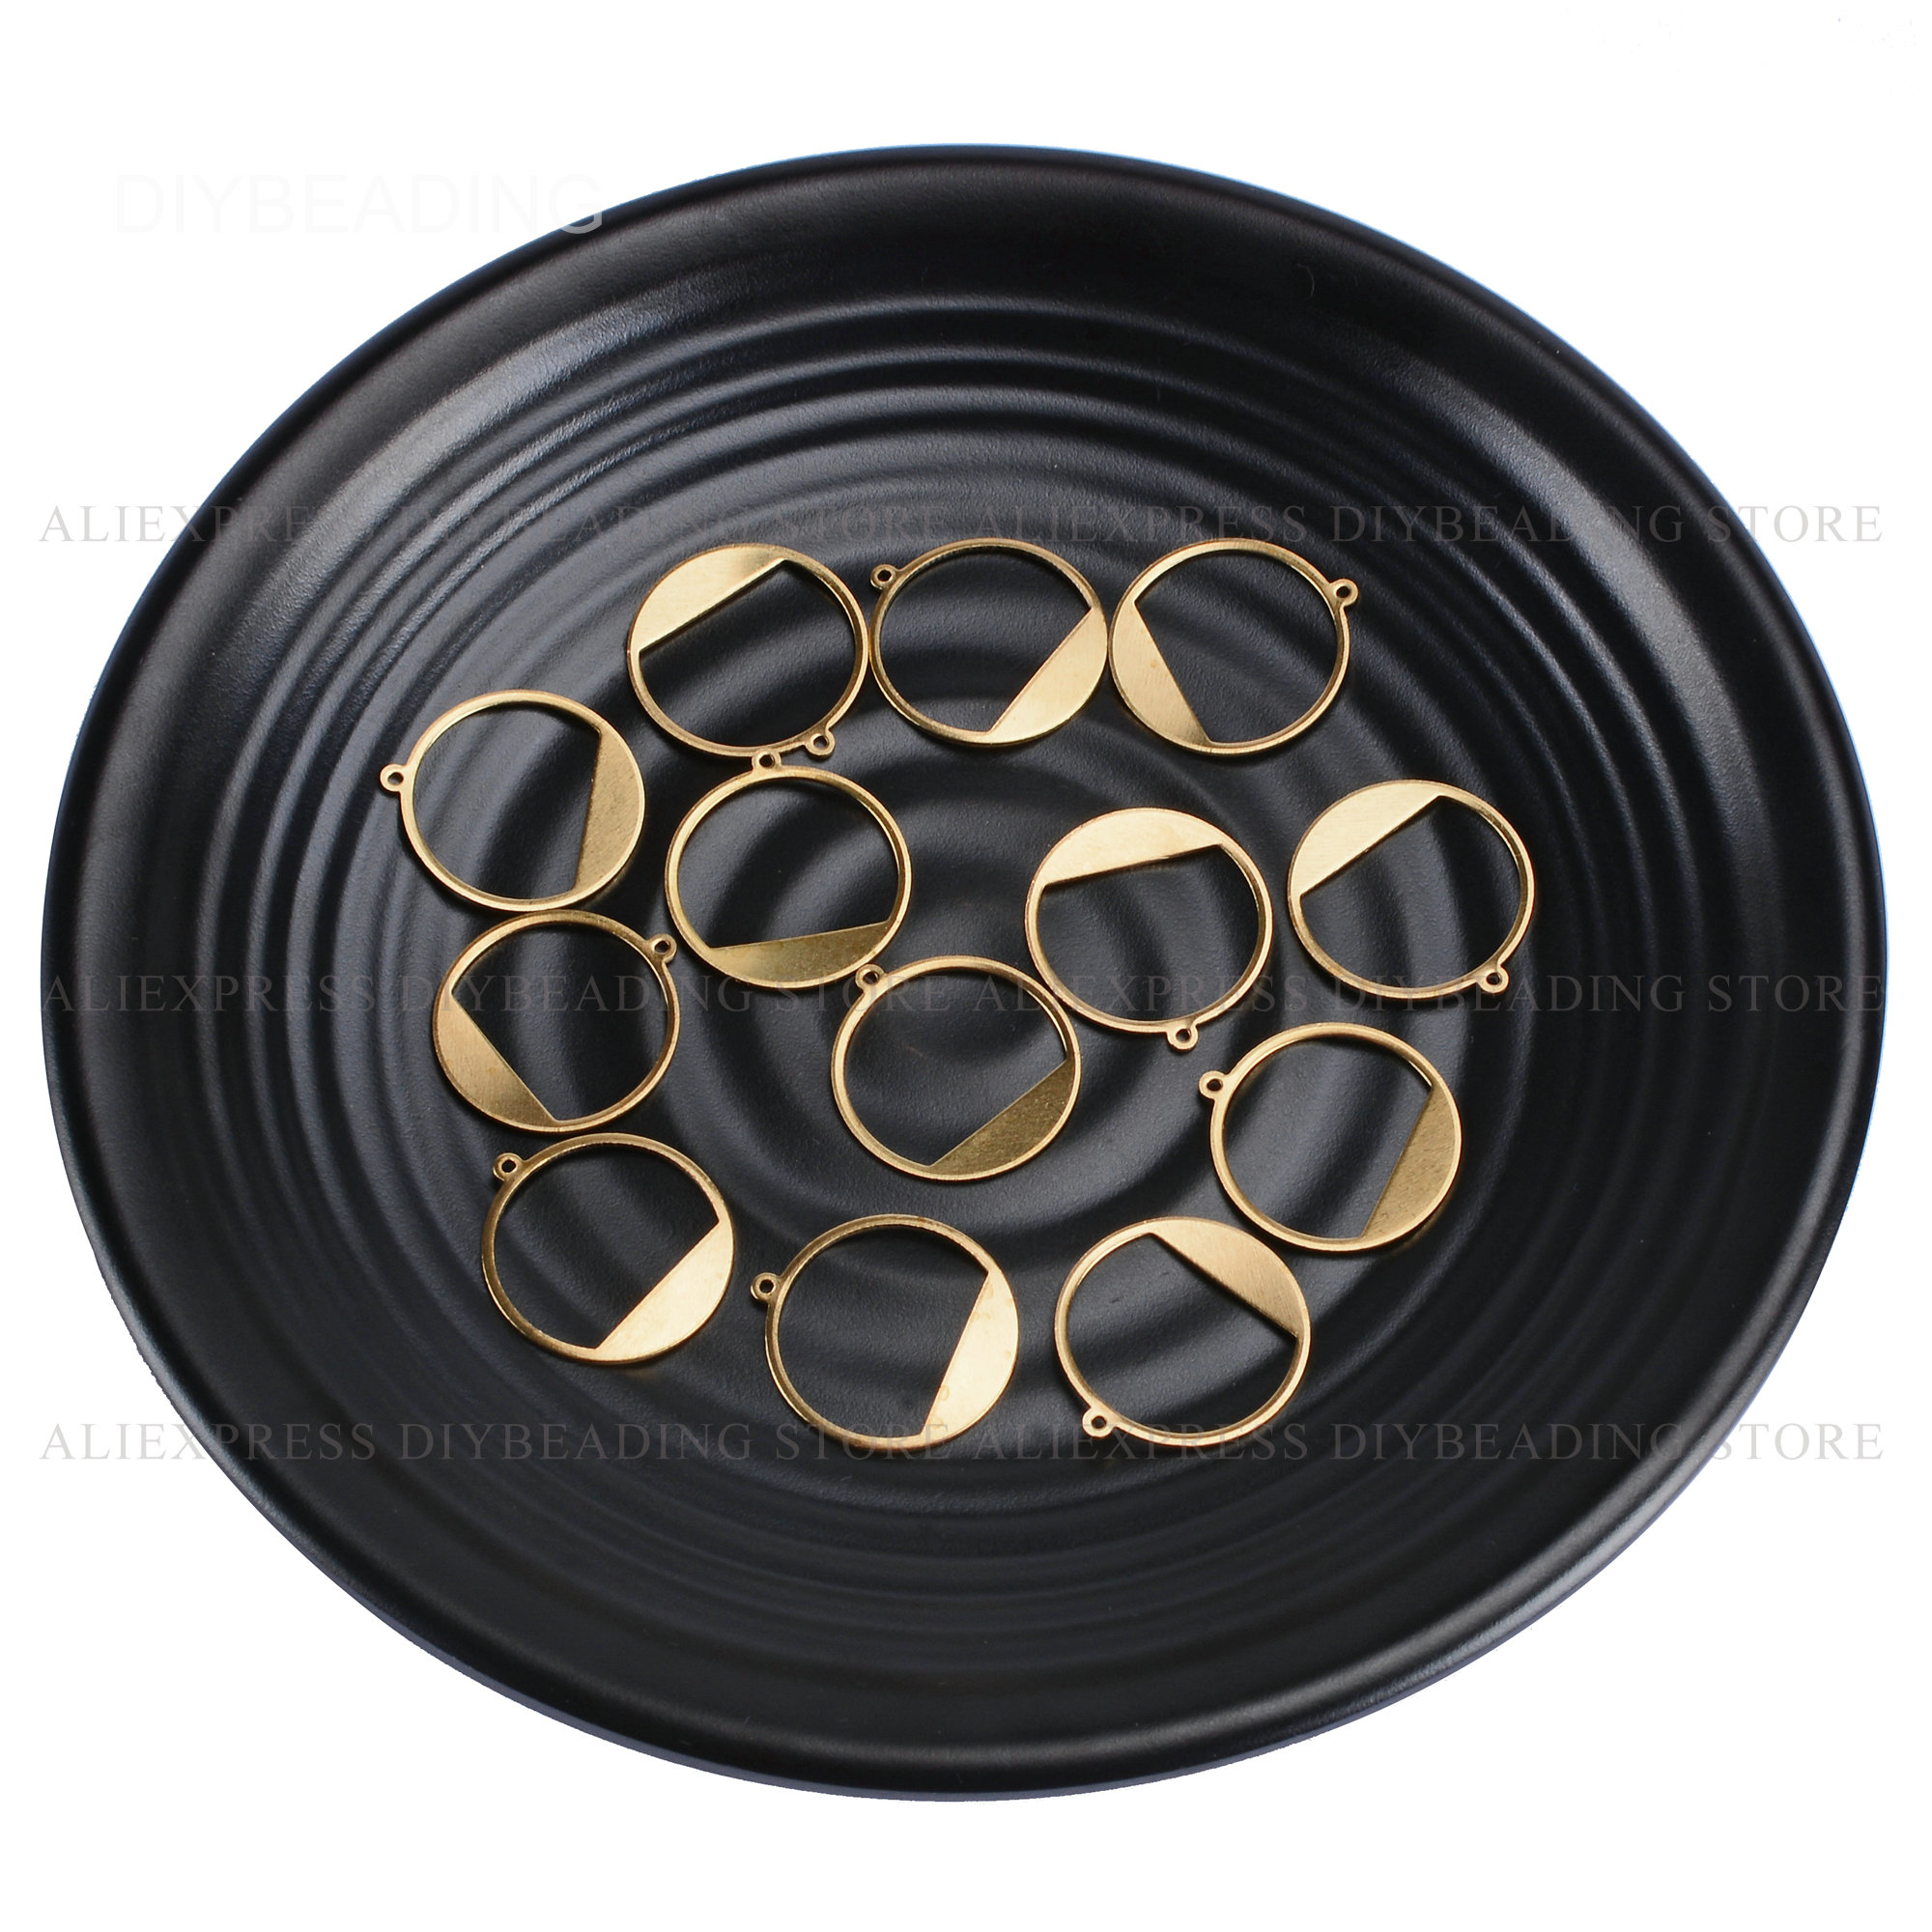 20-1000 Pcs Brass Round Circle Charms For Earring Necklace Making Hollow Geometric Metal Pendant Finding Bulk Wholesale (20mm)